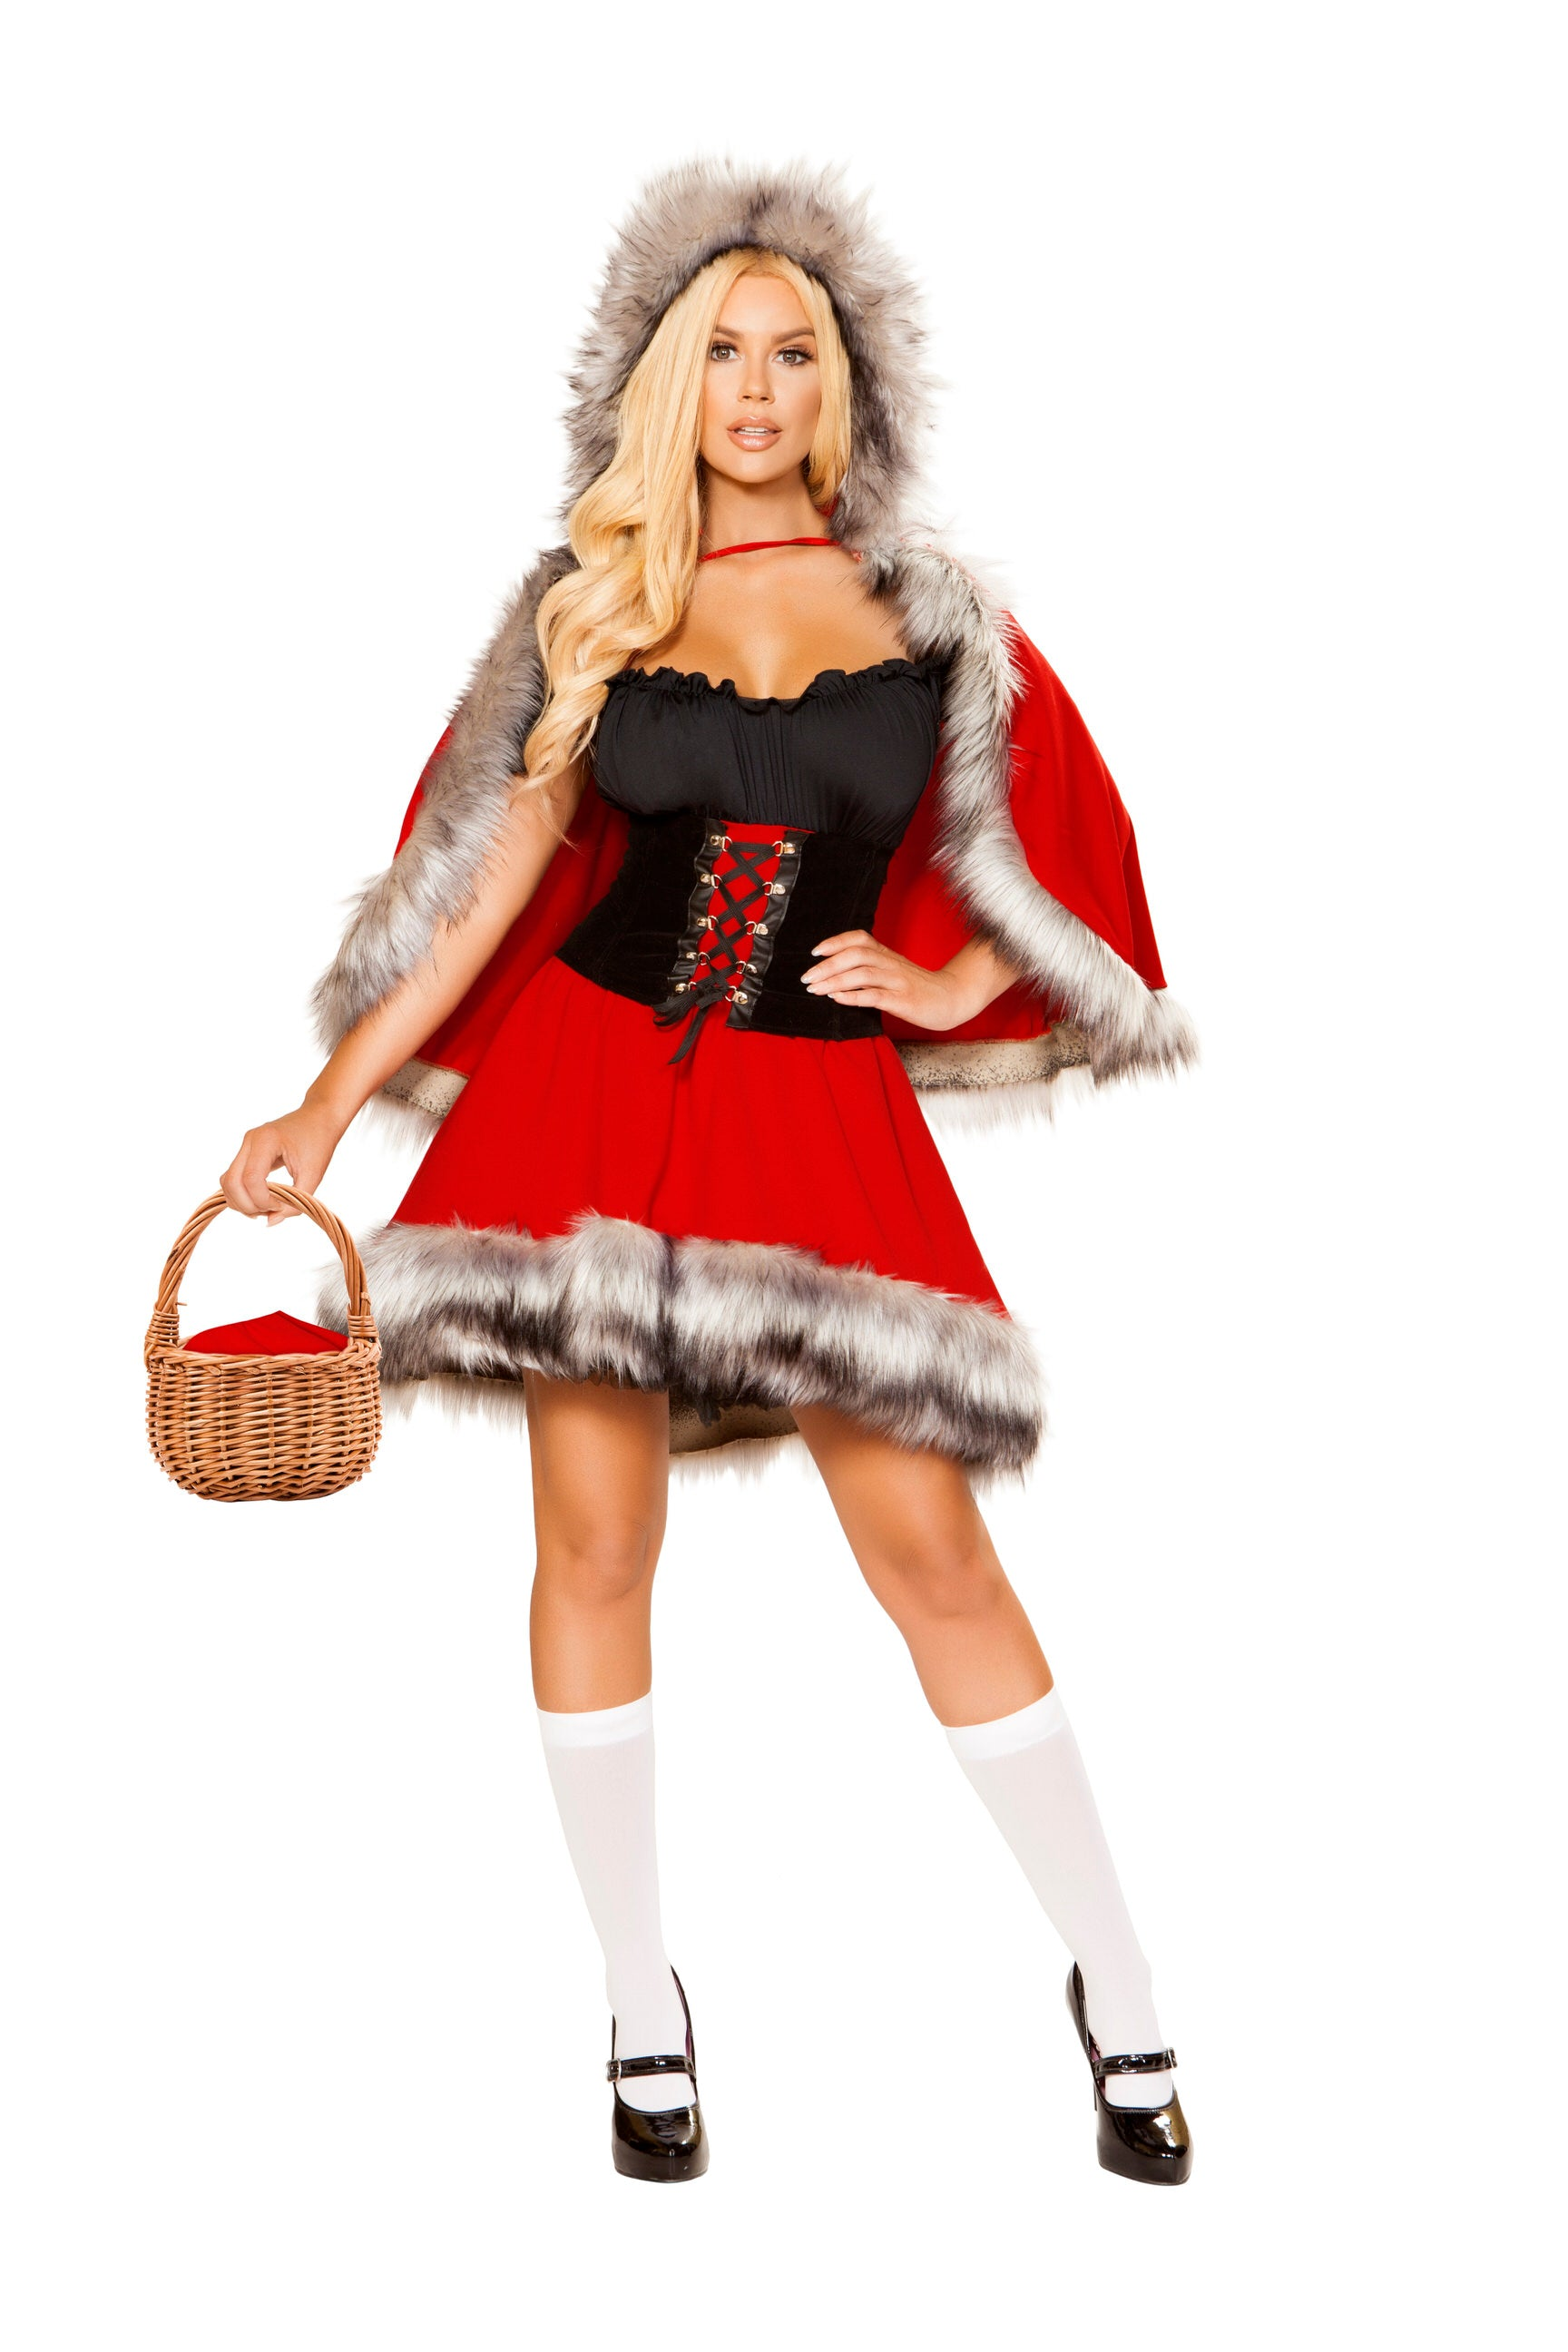 4854 - 3pc The Red Chapped Diva ${description} | Roma Costume and Roma Confidential wholesale manufacturer of Women Apparel bulk world wide wholesale and world wide drop ship services for Adult Halloween Costumes, Sexy and Elegant Lingerie, Rave Clothing, Club wear, and Christmas Costumes. Costumes, Roma Costume, Inc., Roma Costume, Roma Confidential, Wholesale clothing, drop ship, drop ship service, Wholesale Lingerie, Wholesale Adult Halloween Costumes, Rave Clothing, EDM Clothing, Festival Wear, Christmas Costumes, Clubwear, Club wear.